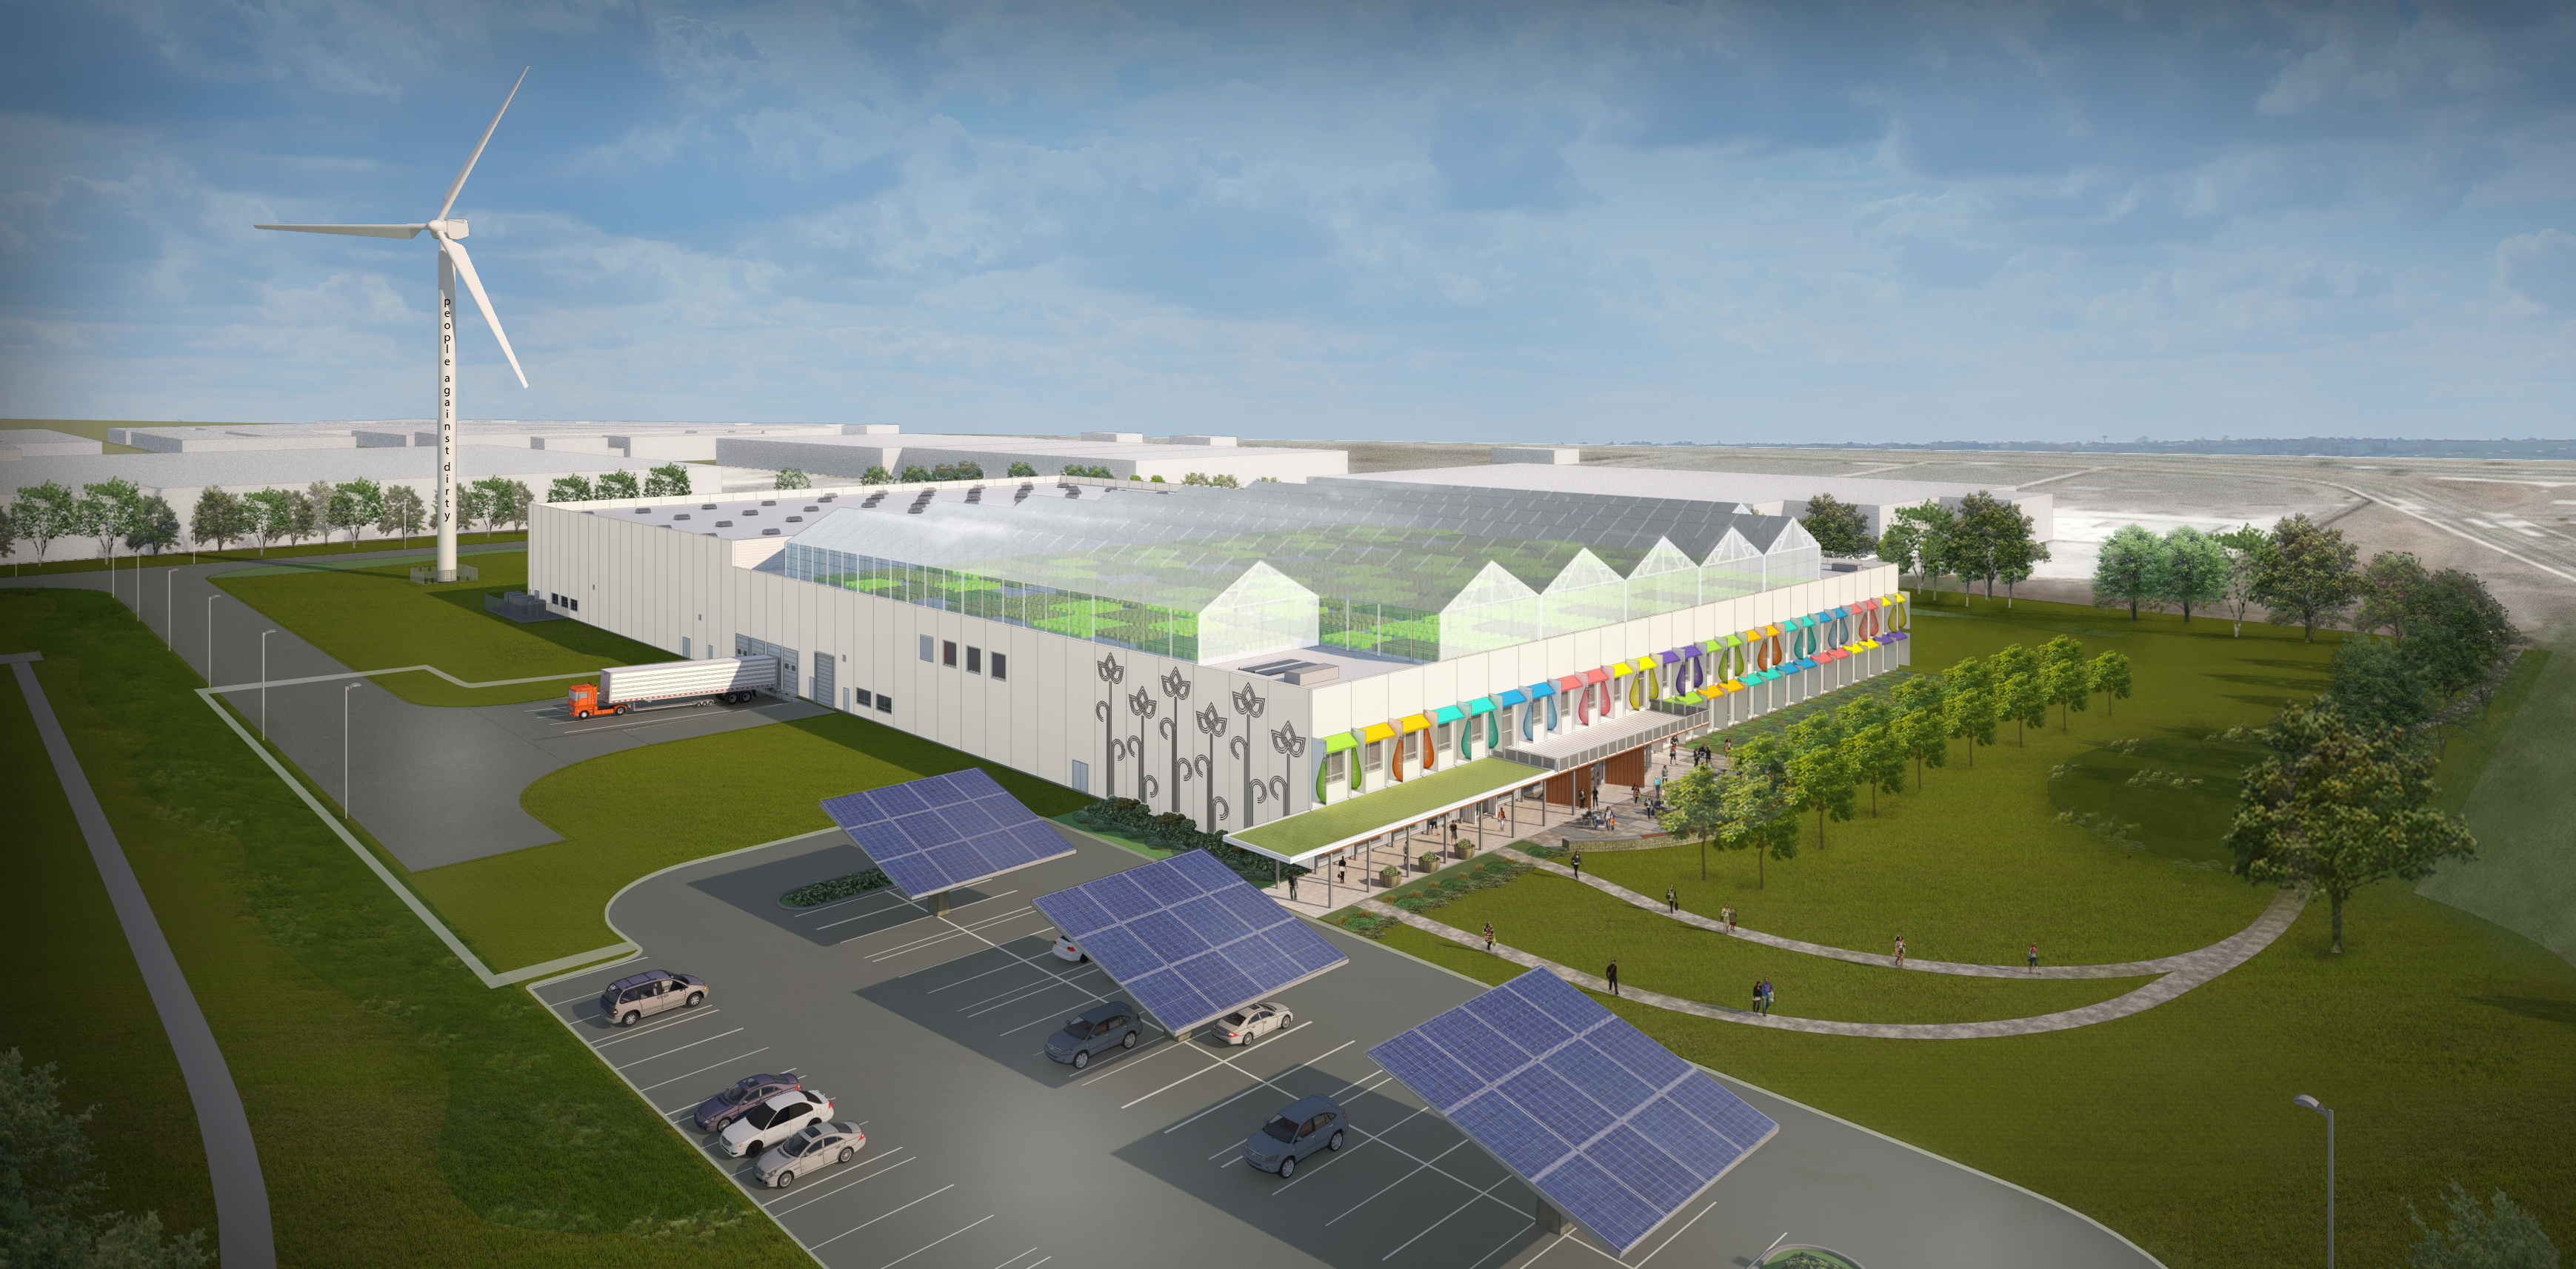 Designed by William McDonough + Partners, Method's plant includes a refurbished 230 foot wind turbine, solar panel installations, Cradle-to-Cradle materials throughout the interior and exterior of the plant, and plans for greenhouses on the roof. (Photo: Business Wire)